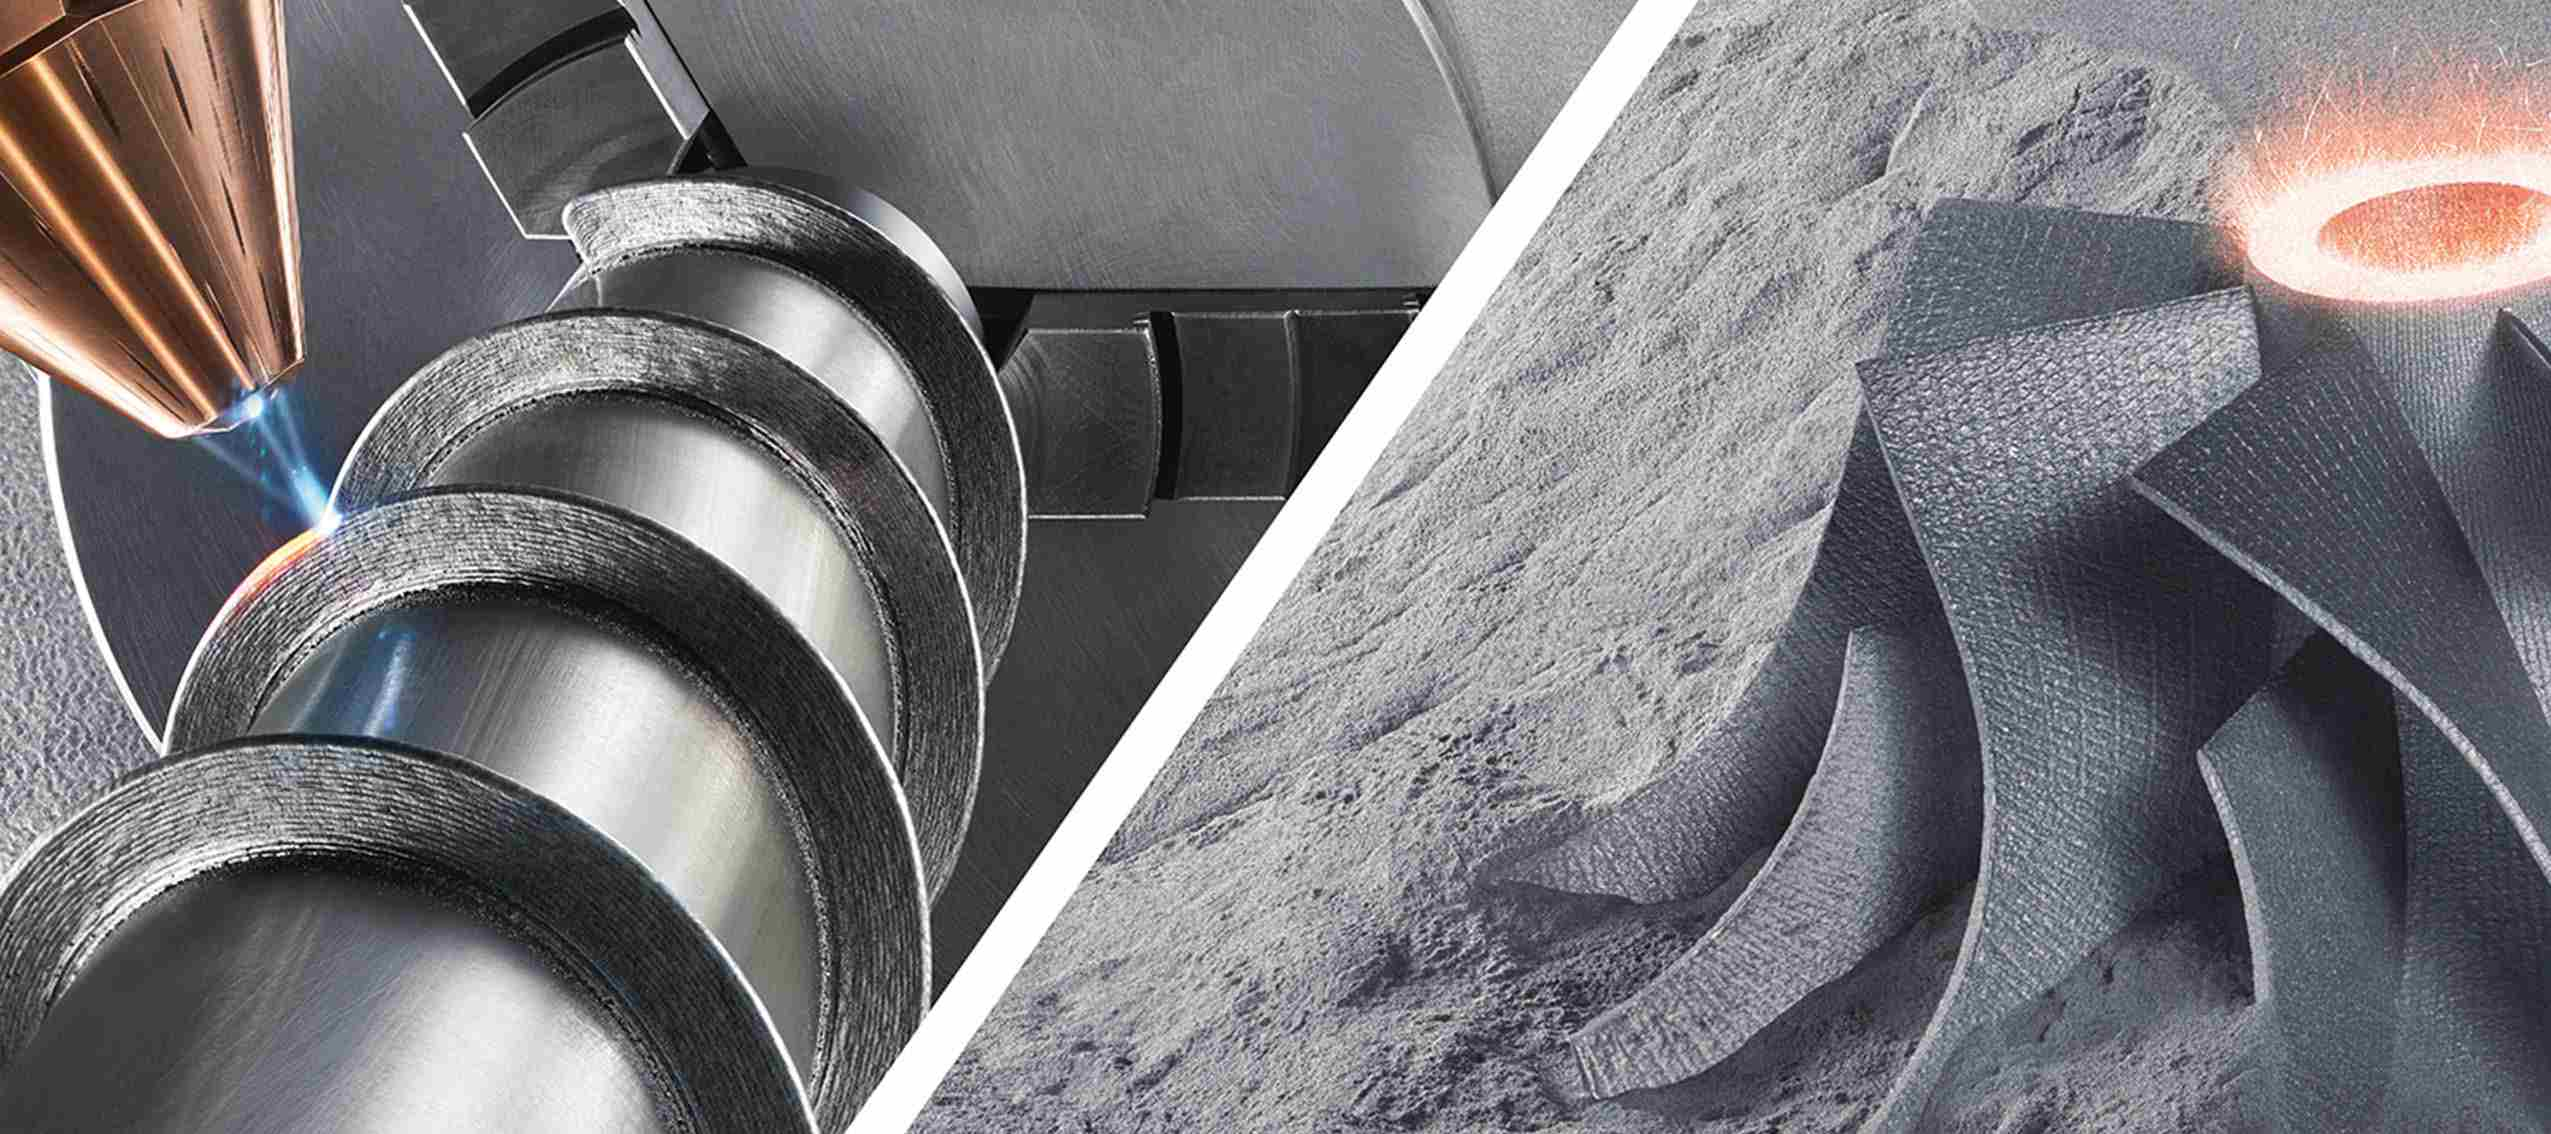 TRUMPF presents industrial 3D printing technology for complex metal parts